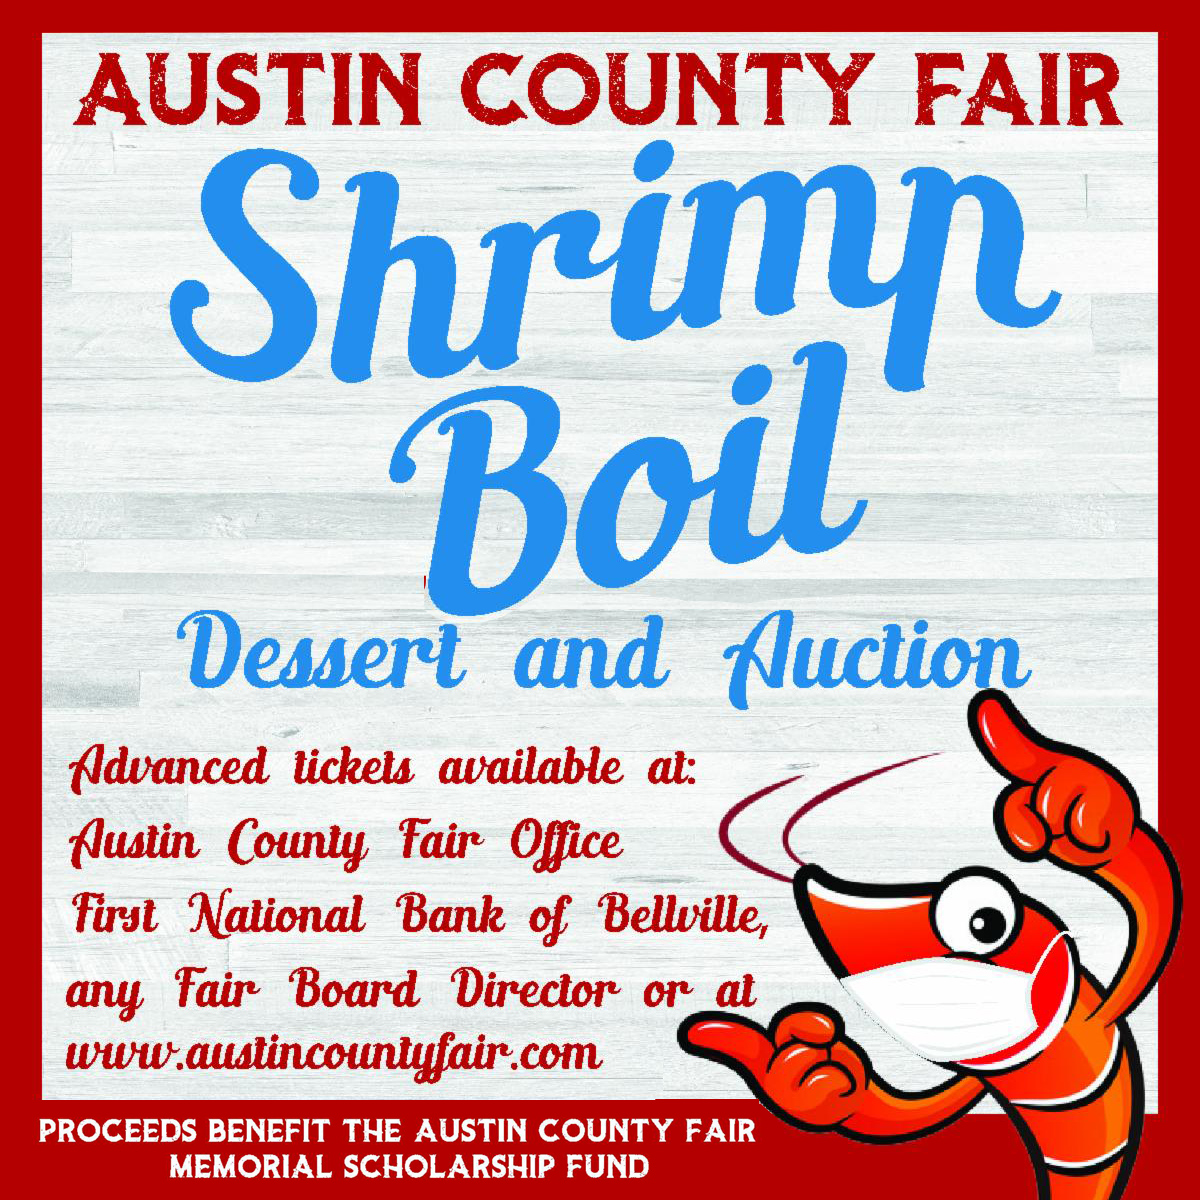 Austin County Fair Shrimp Boil